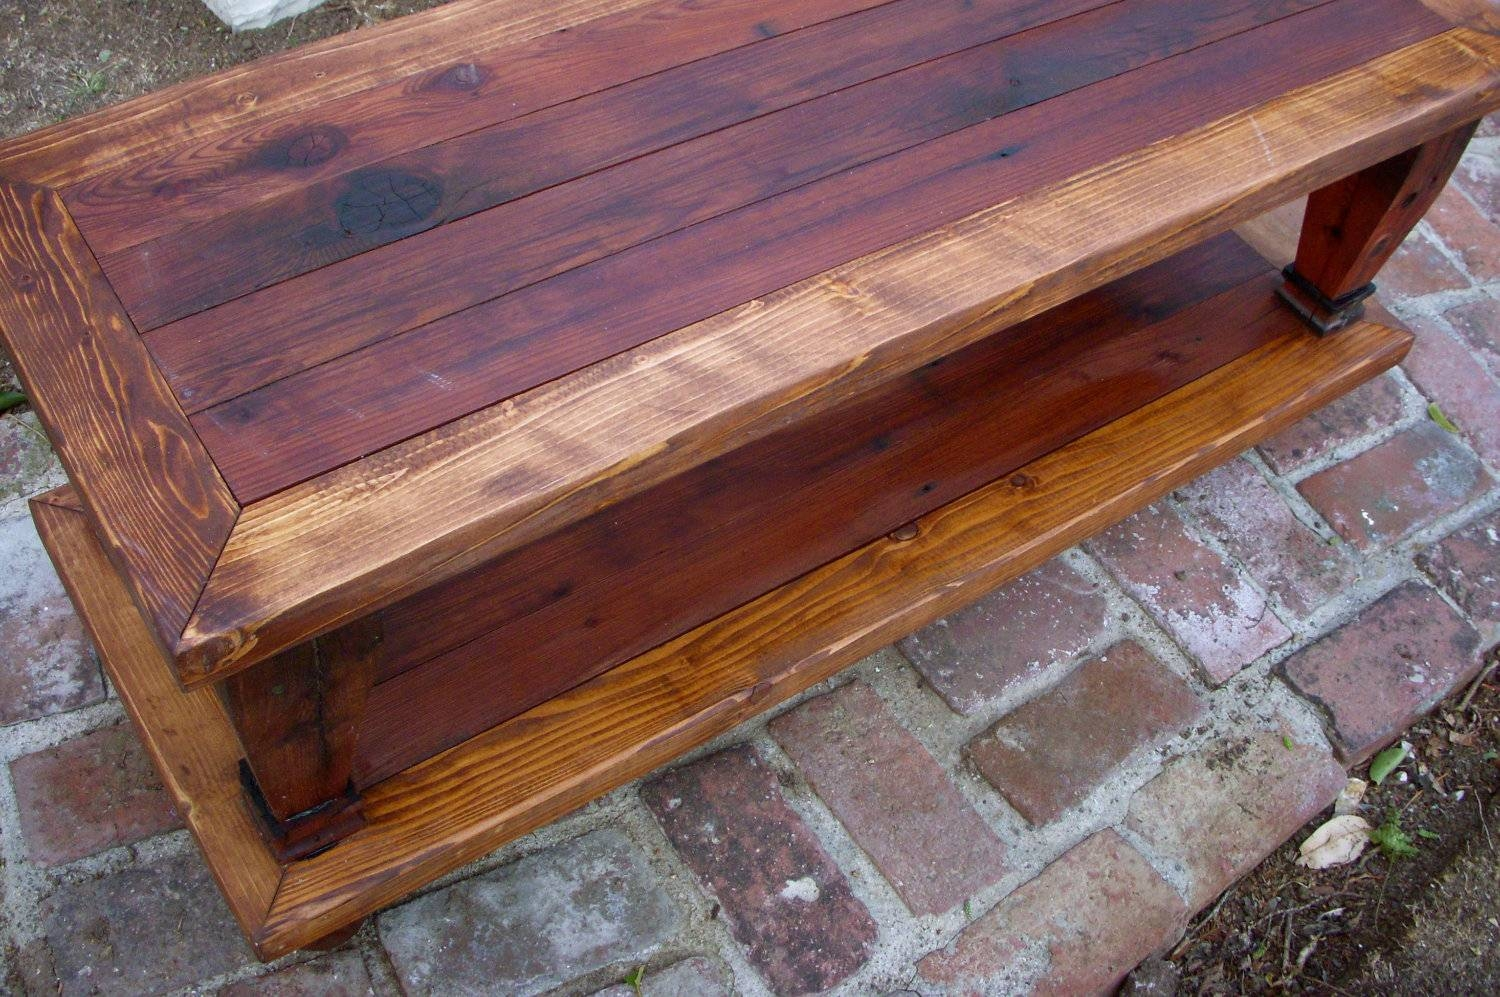 Wood Coffee Table Handmade Furniture Living Room Shabby Throughout Handmade Wooden Coffee Tables (View 10 of 15)